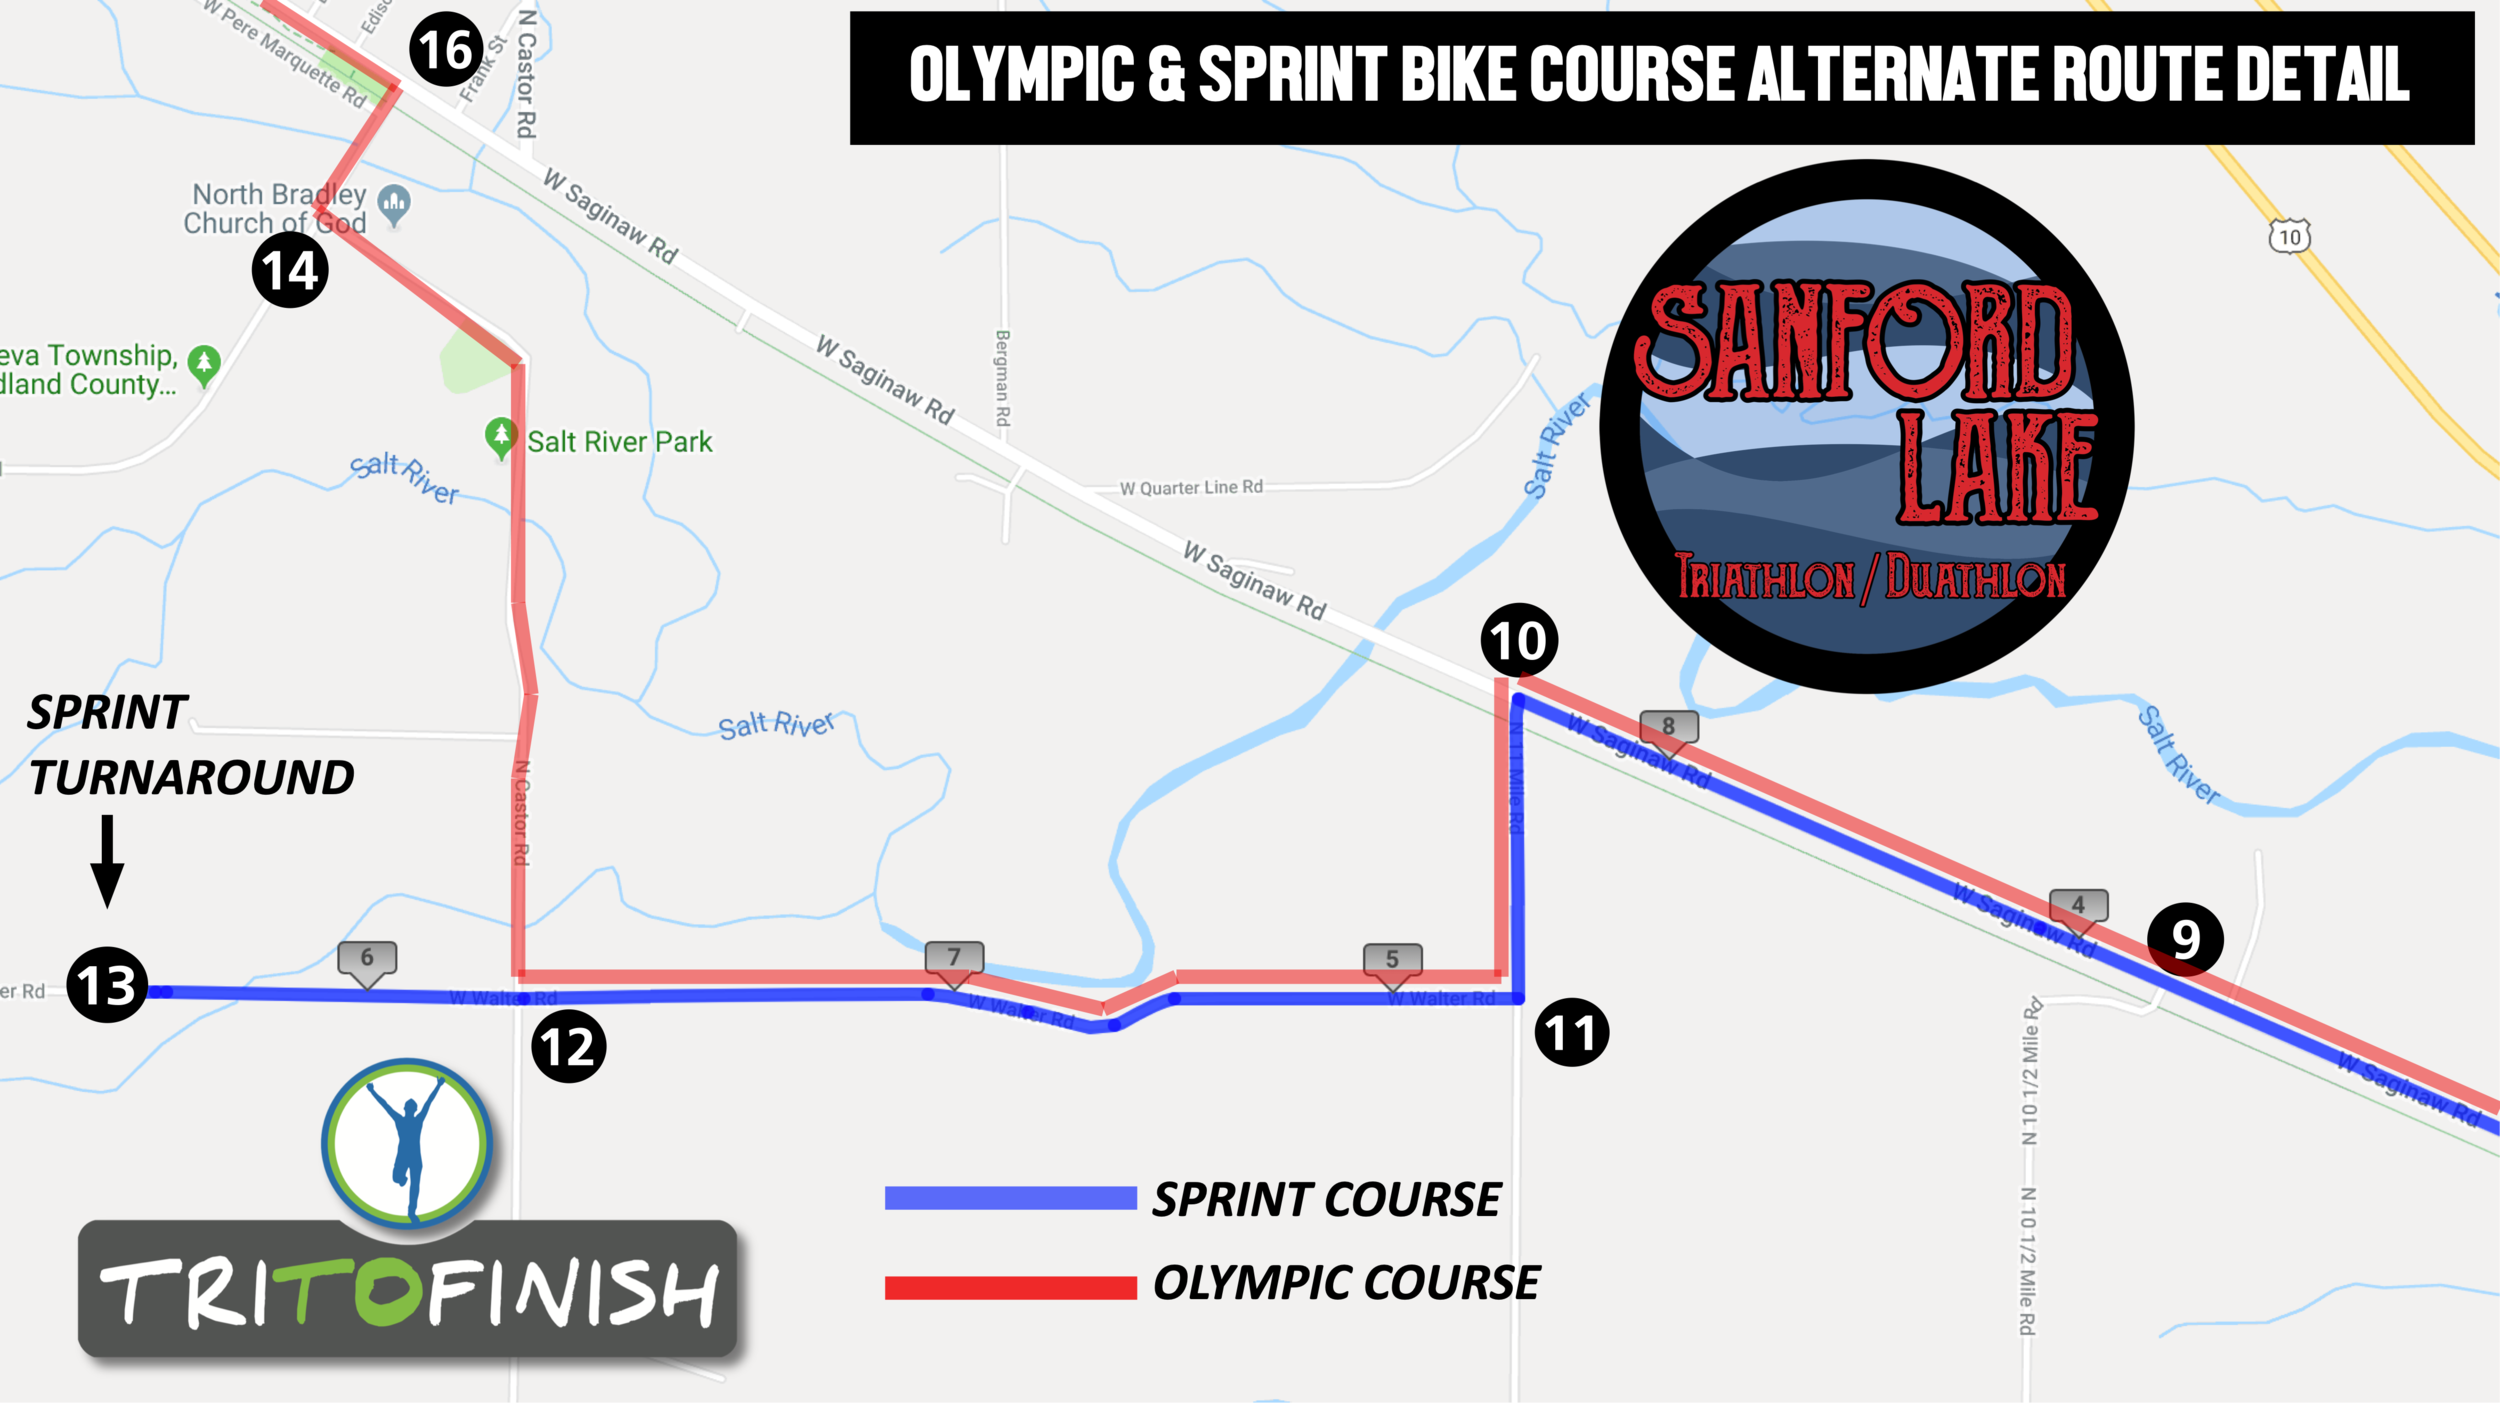 OLY&SPRINTBIKEDETOURDETAIL.png